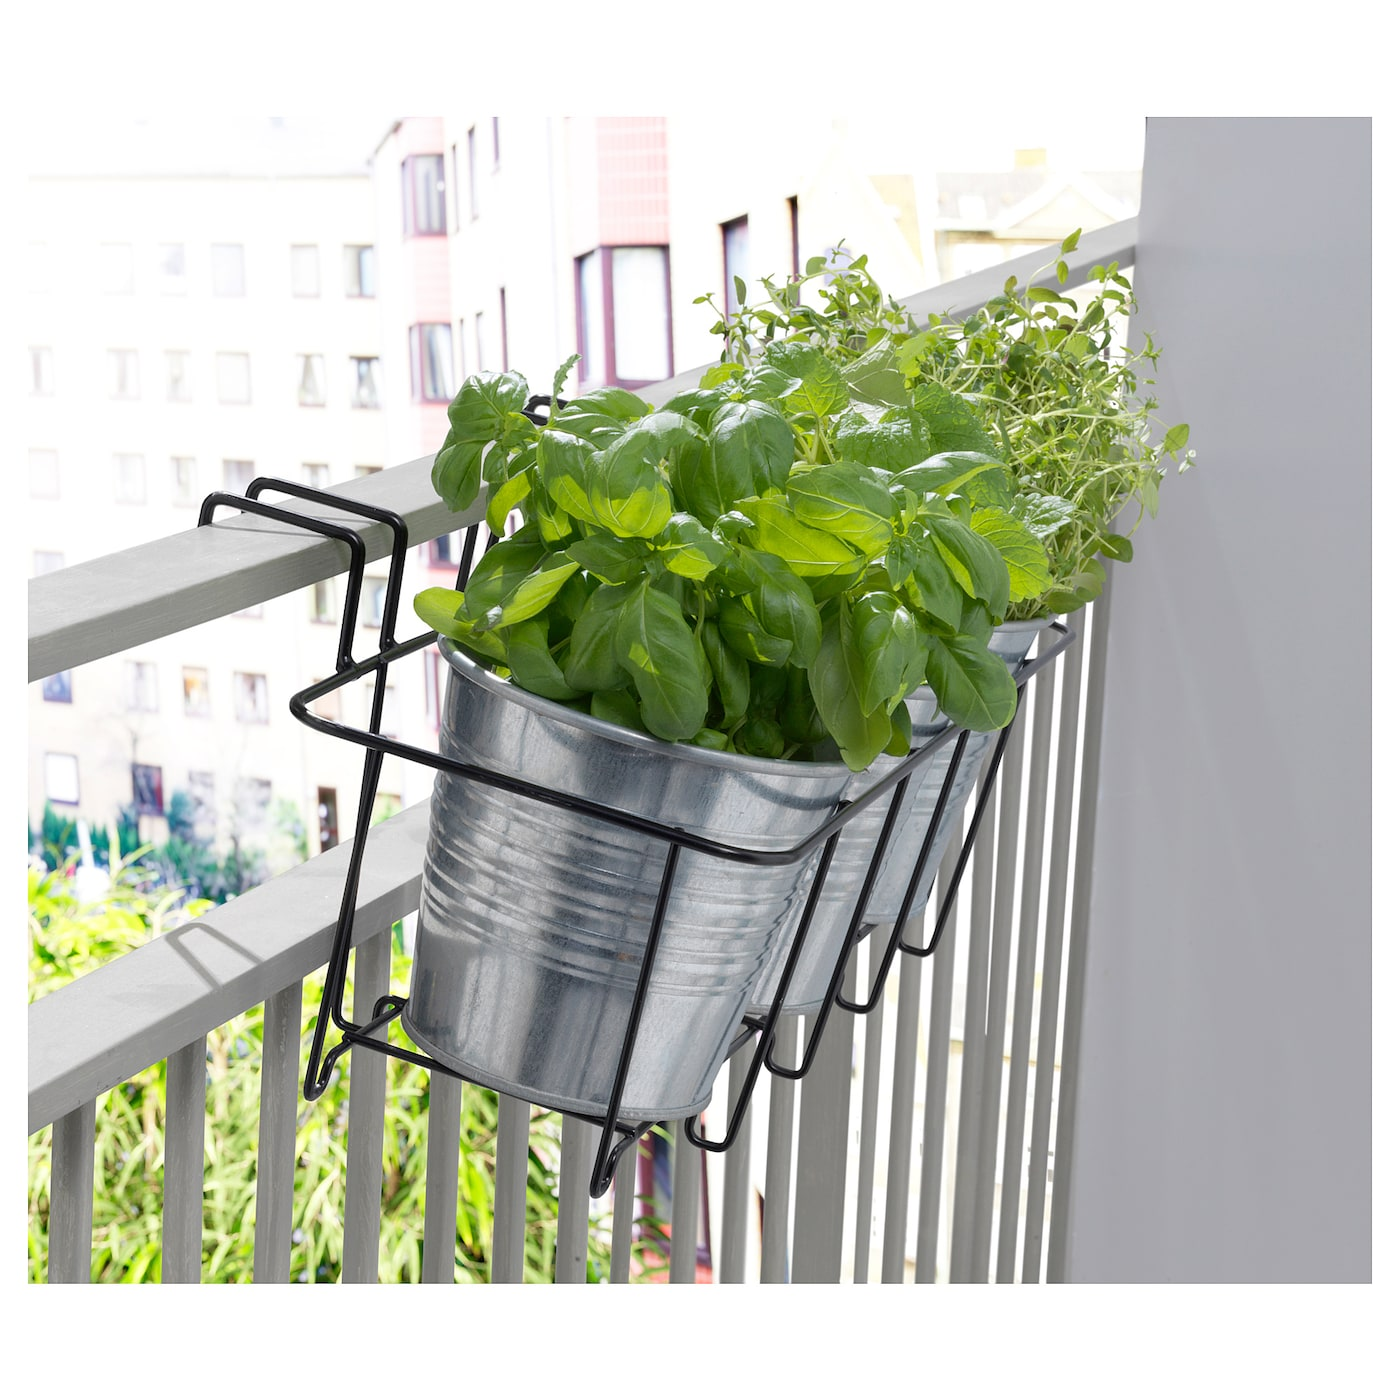 Ikea Sommar 2018 Plant Pot Holder Suitable For Both Indoor And Outdoor Use